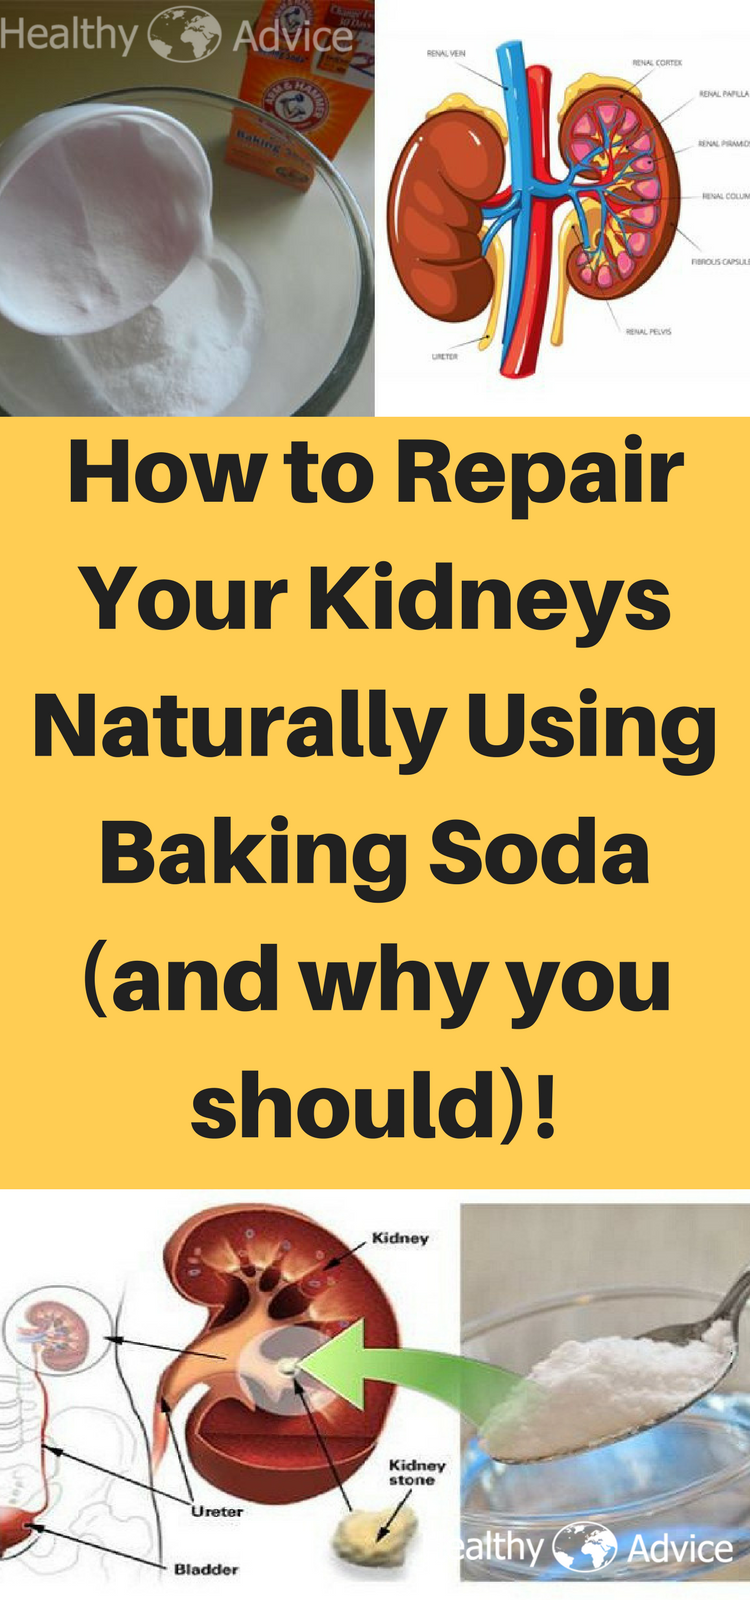 Repair Kidneys Cleanse Detox Kidney Feature Kidneys